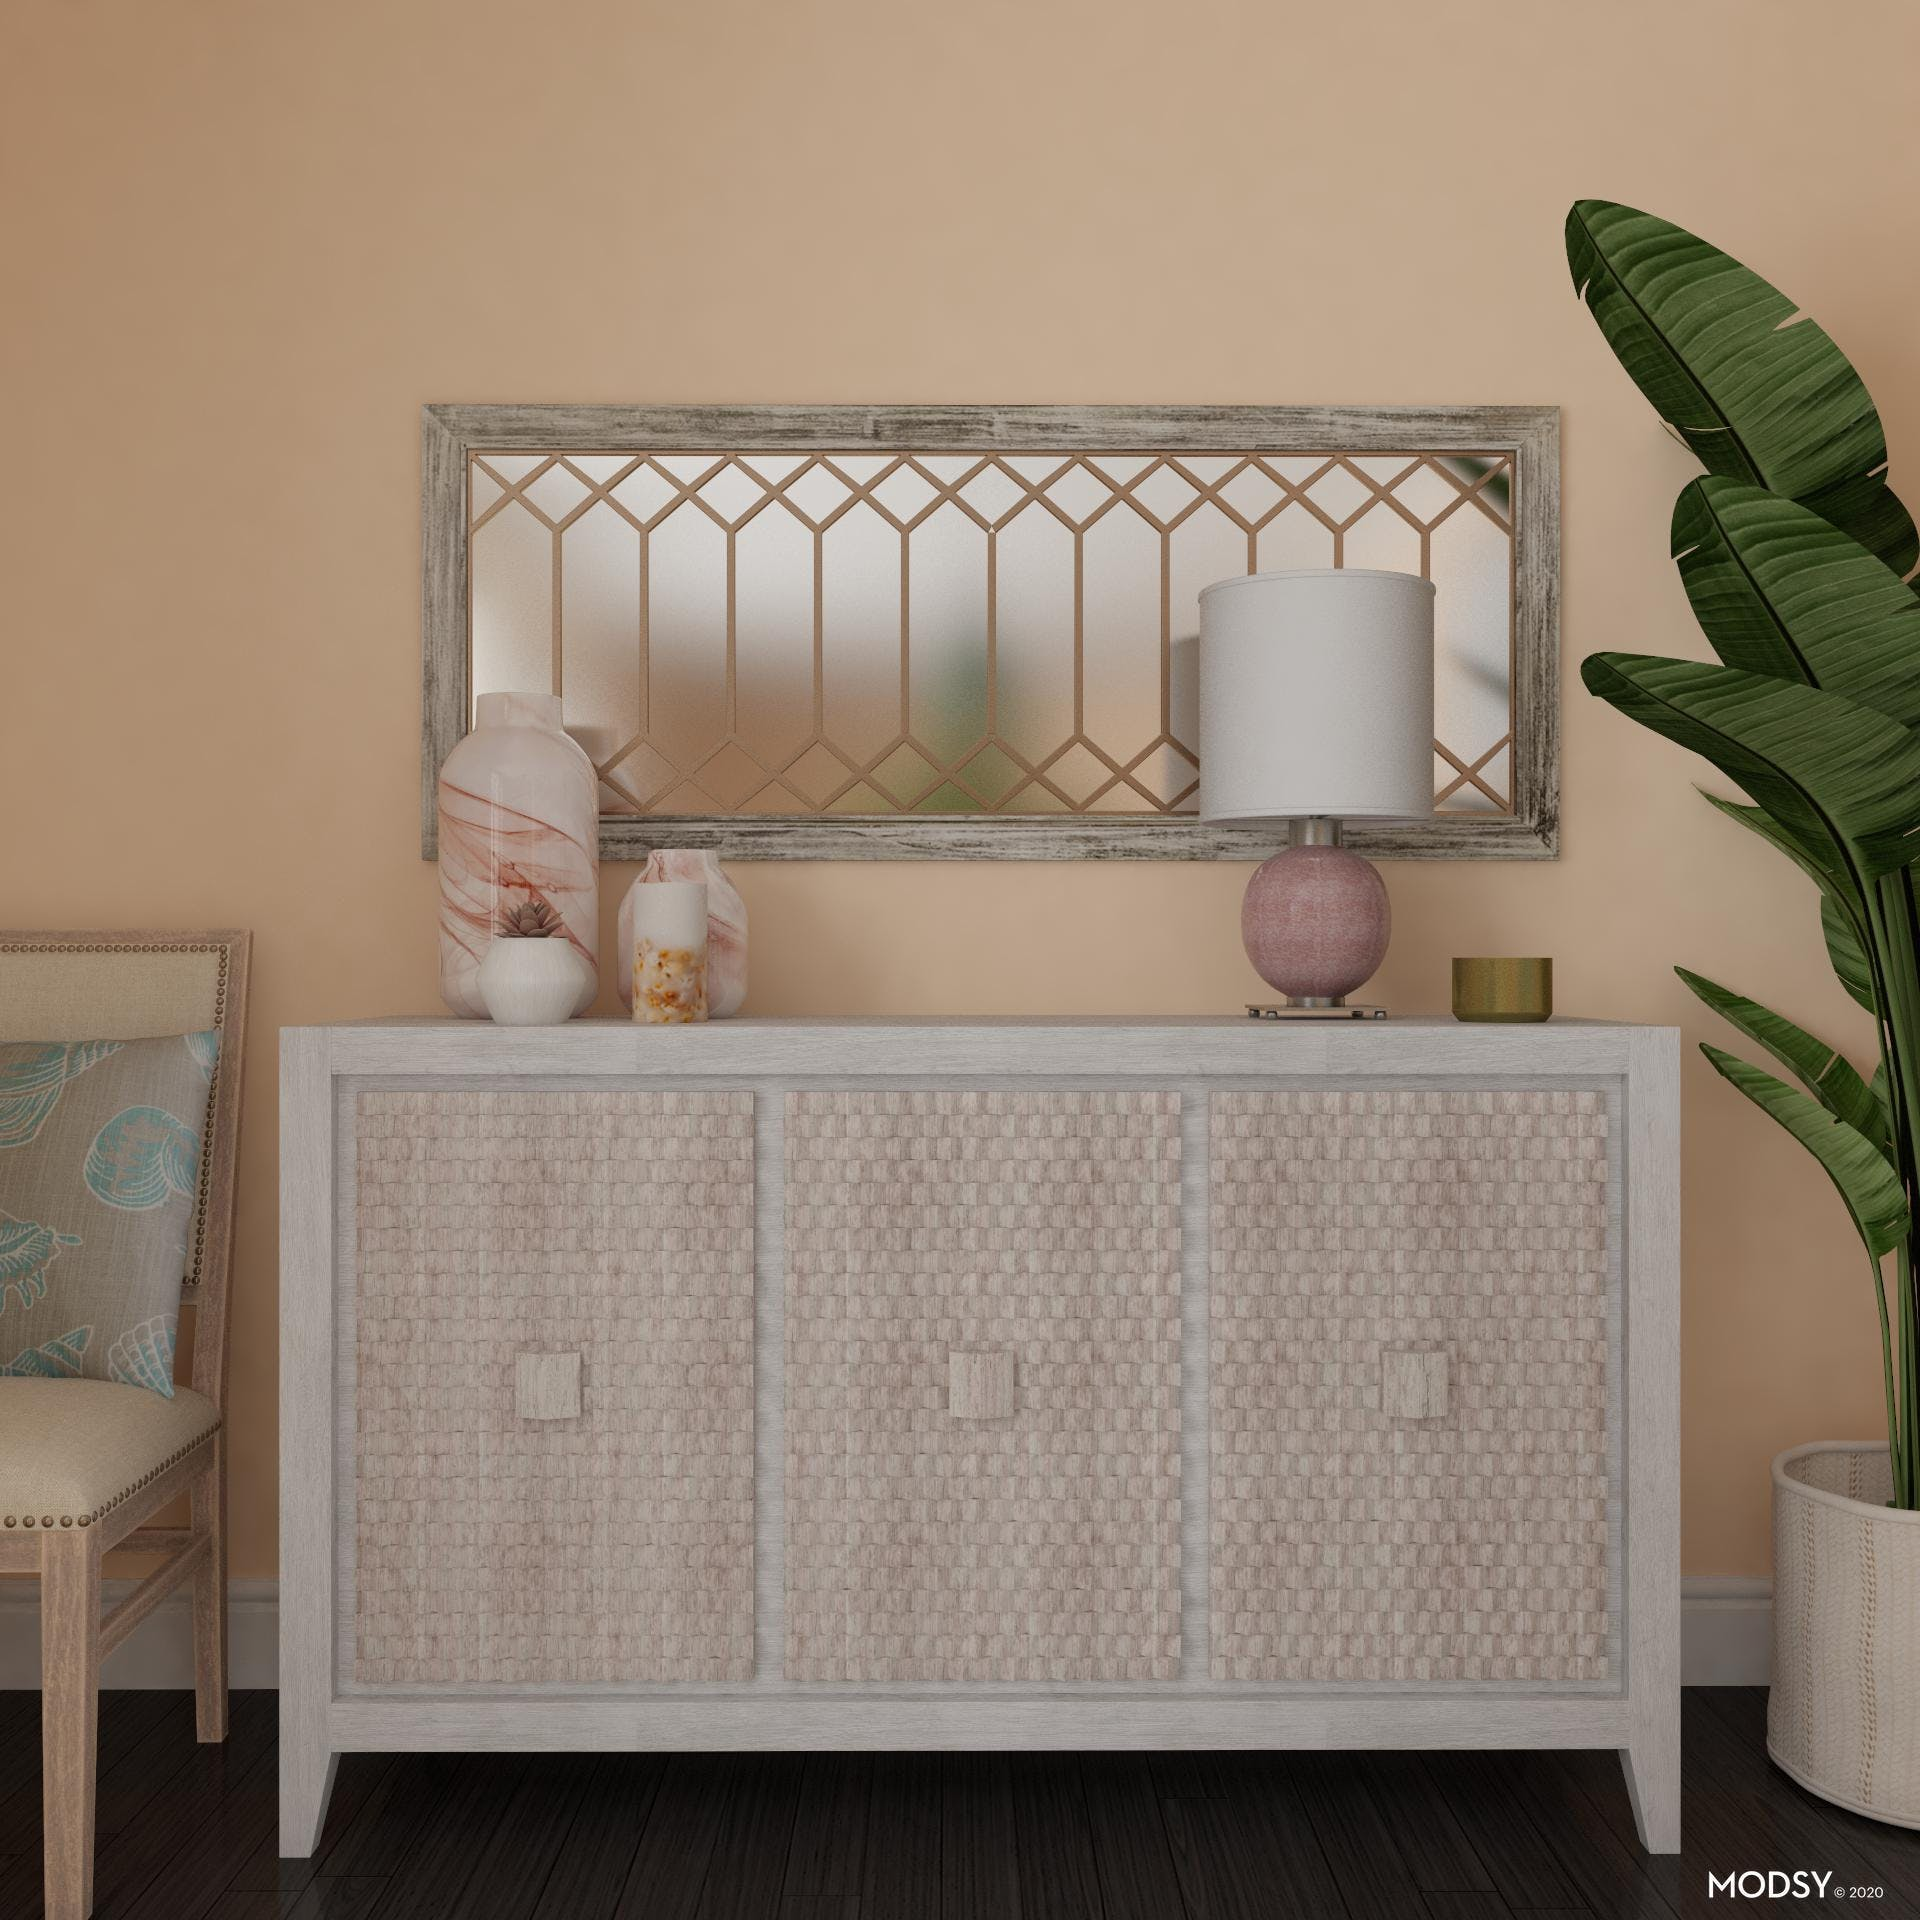 Sideboard Styling Tips